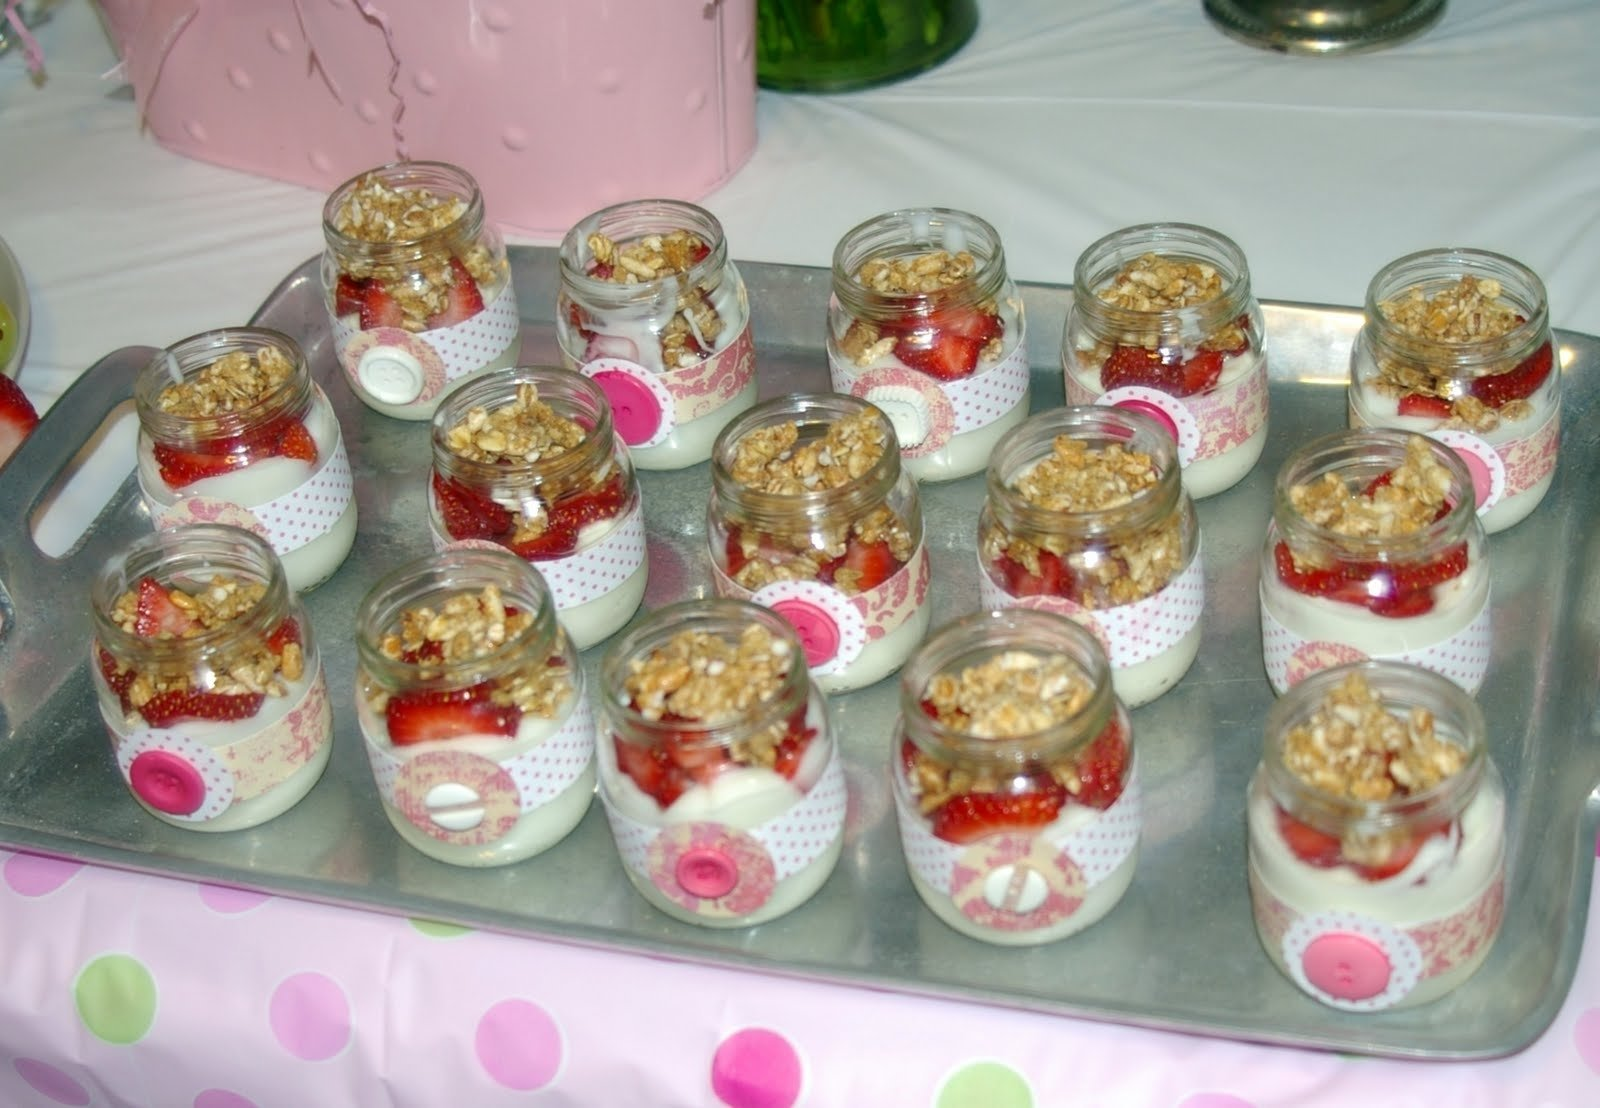 10 Unique Baby Shower Food Ideas For A Girl baby shower food ideas cute baby shower finger food ideas 3 2021